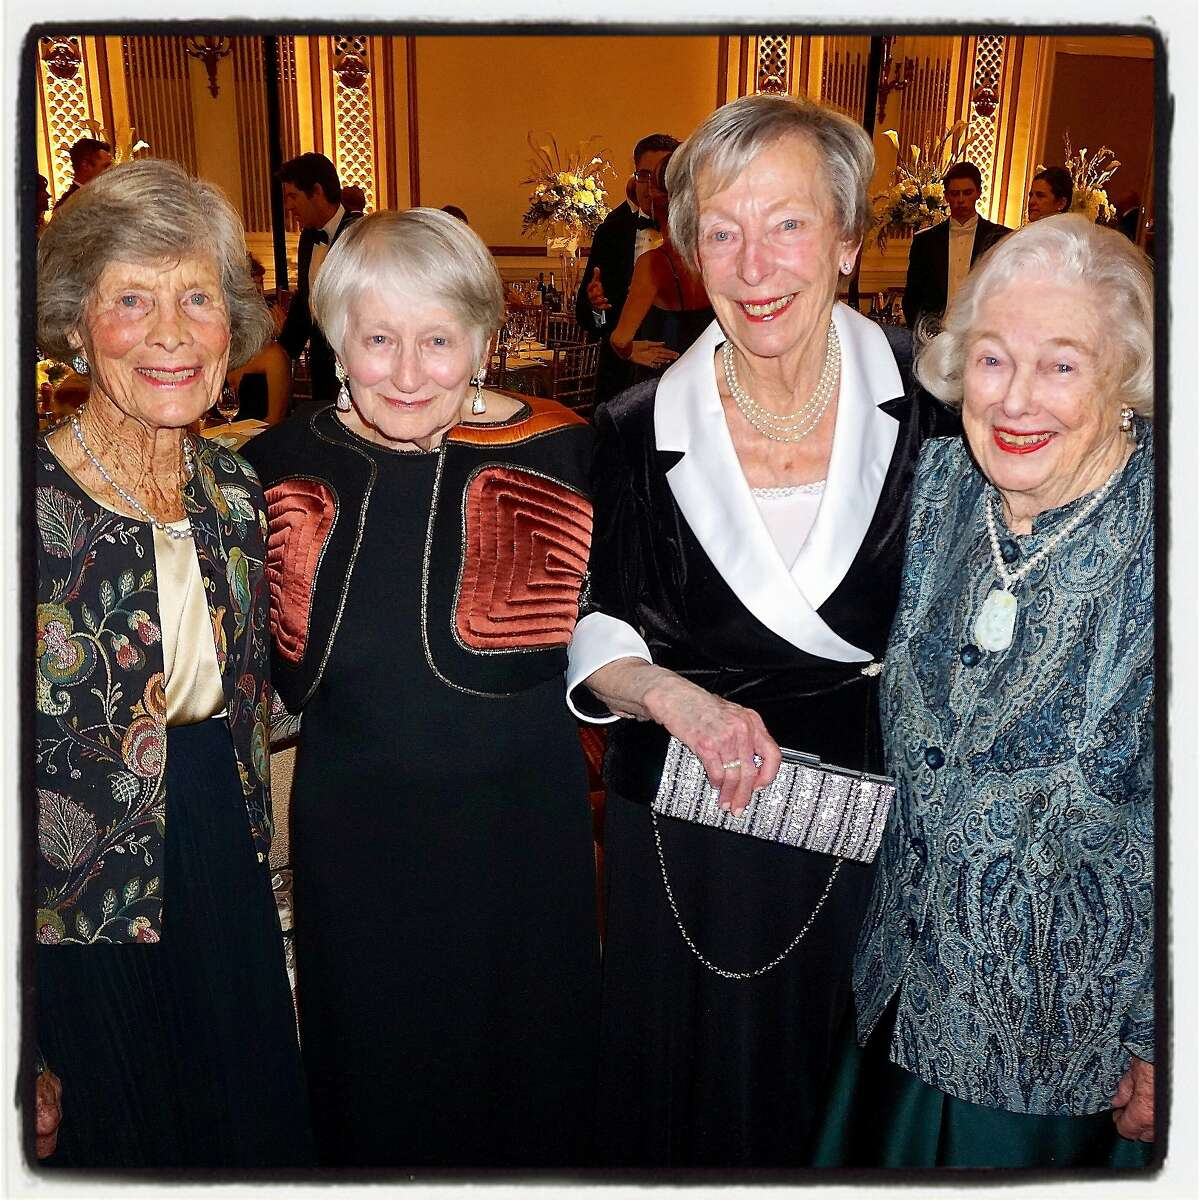 Former Cotillion Club debutantes (from left) Simone Hoag, Margaret Dennis, Jane Reynolds and Barbara Bentley at the Palace Hotel for the 75th Cotillion. Dec 2016.